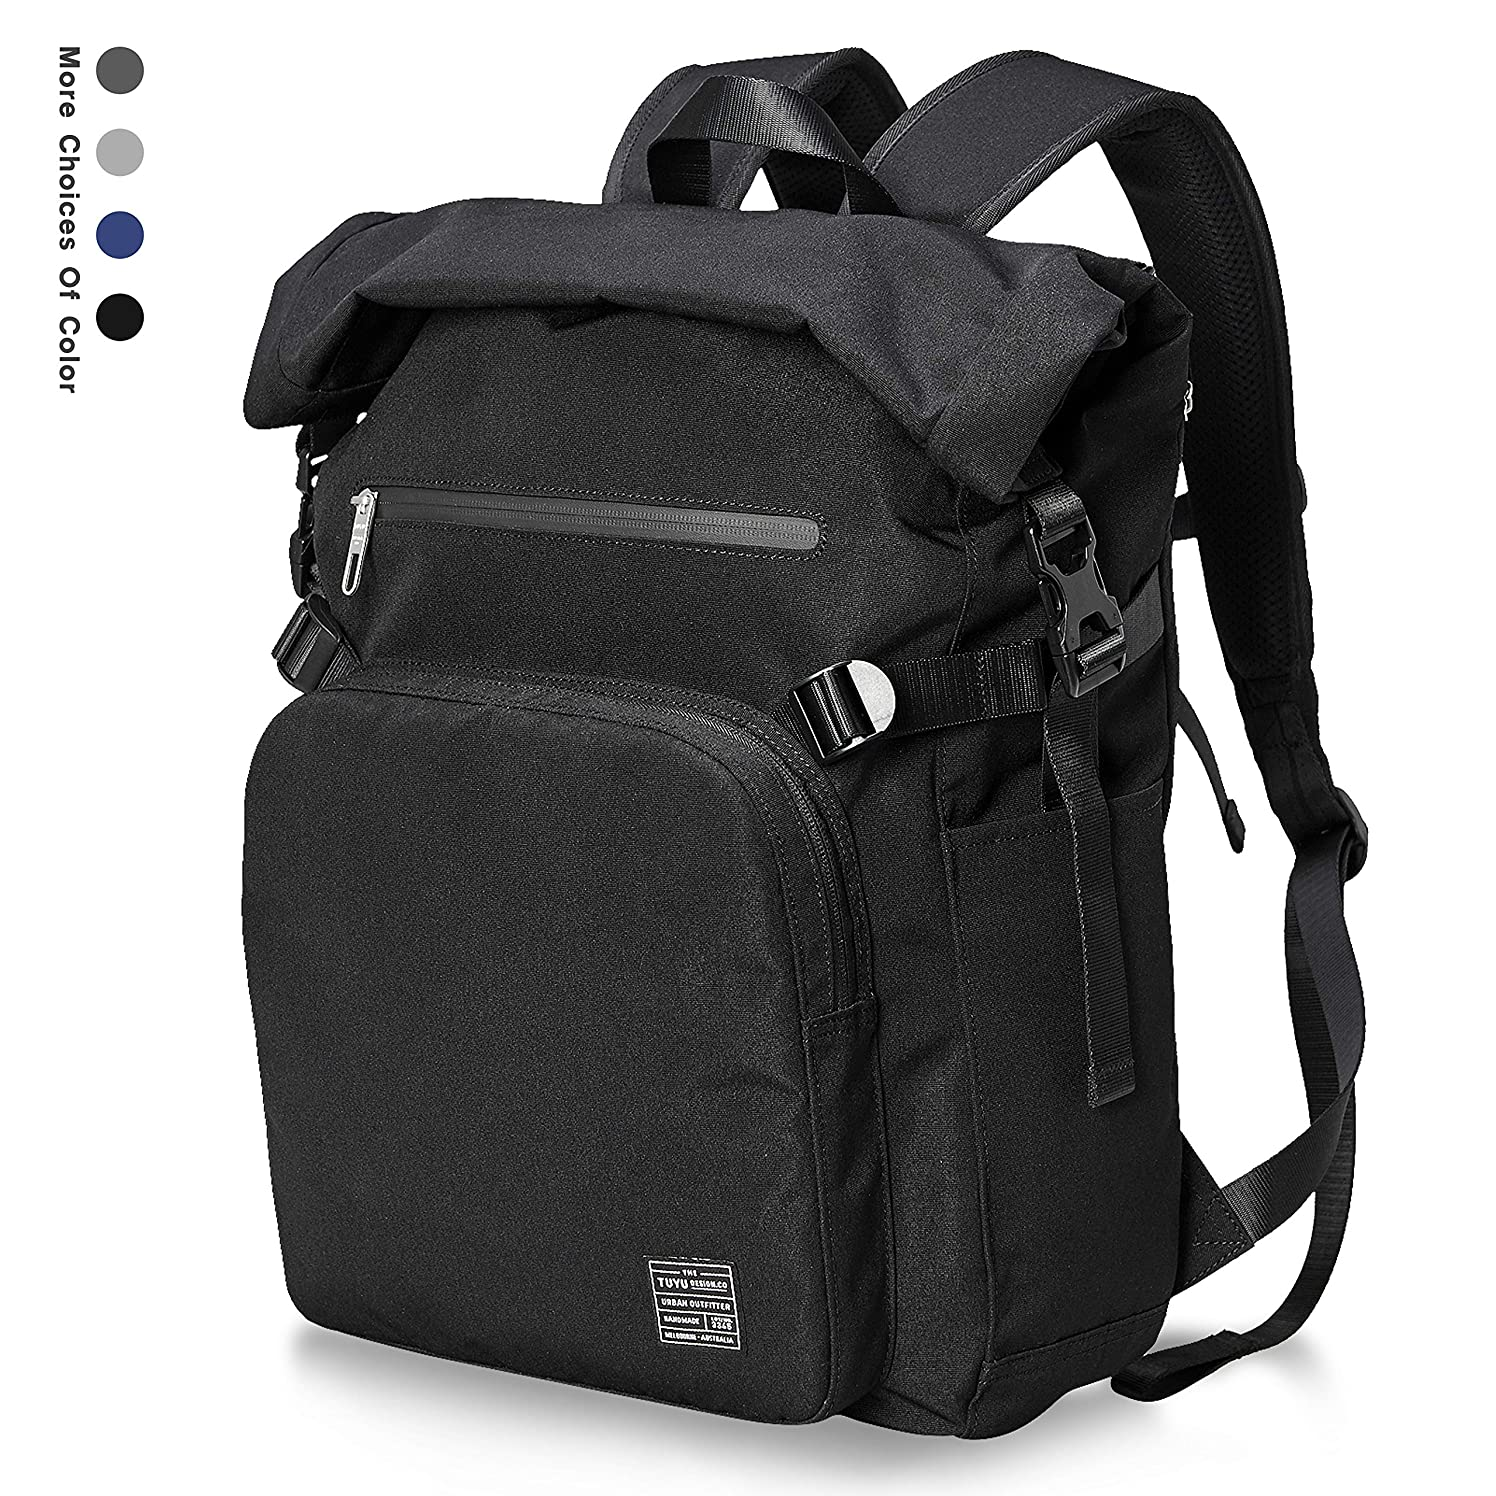 Business Travel Backpack,Laptop Backpack for Men 15.6 inch,Water Resistant Large Backpack,College Backpack Black,17inch Laptop Backpack,Business Anti Theft Daypack